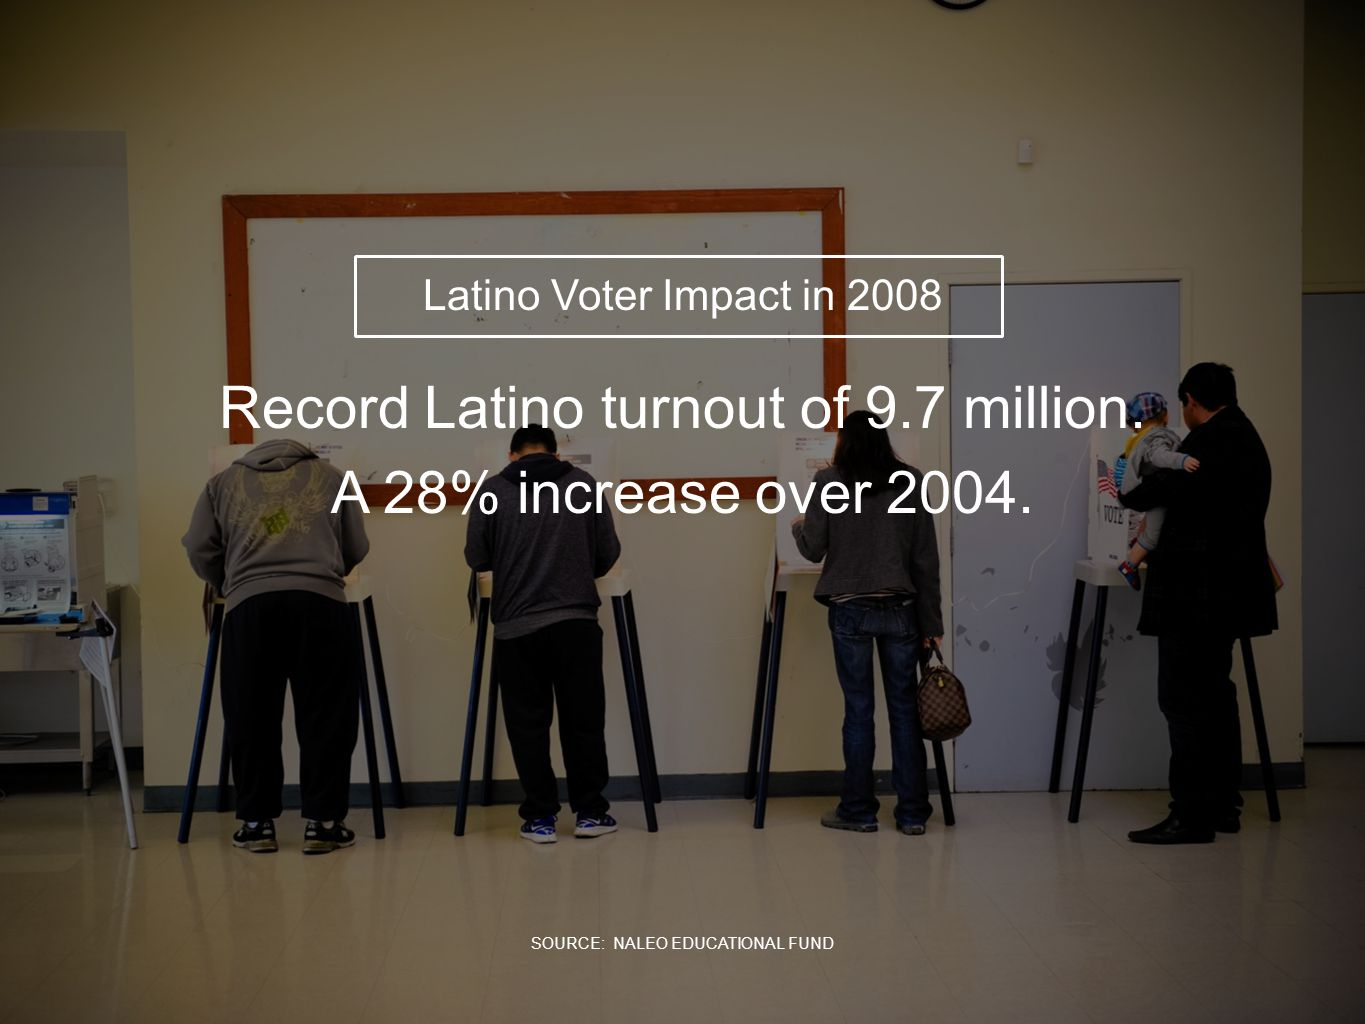 Record Latino turnout of 9.7 million. A 28% increase over 2004. Latino Voter Impact in 2008 SOURCE: NALEO EDUCATIONAL FUND